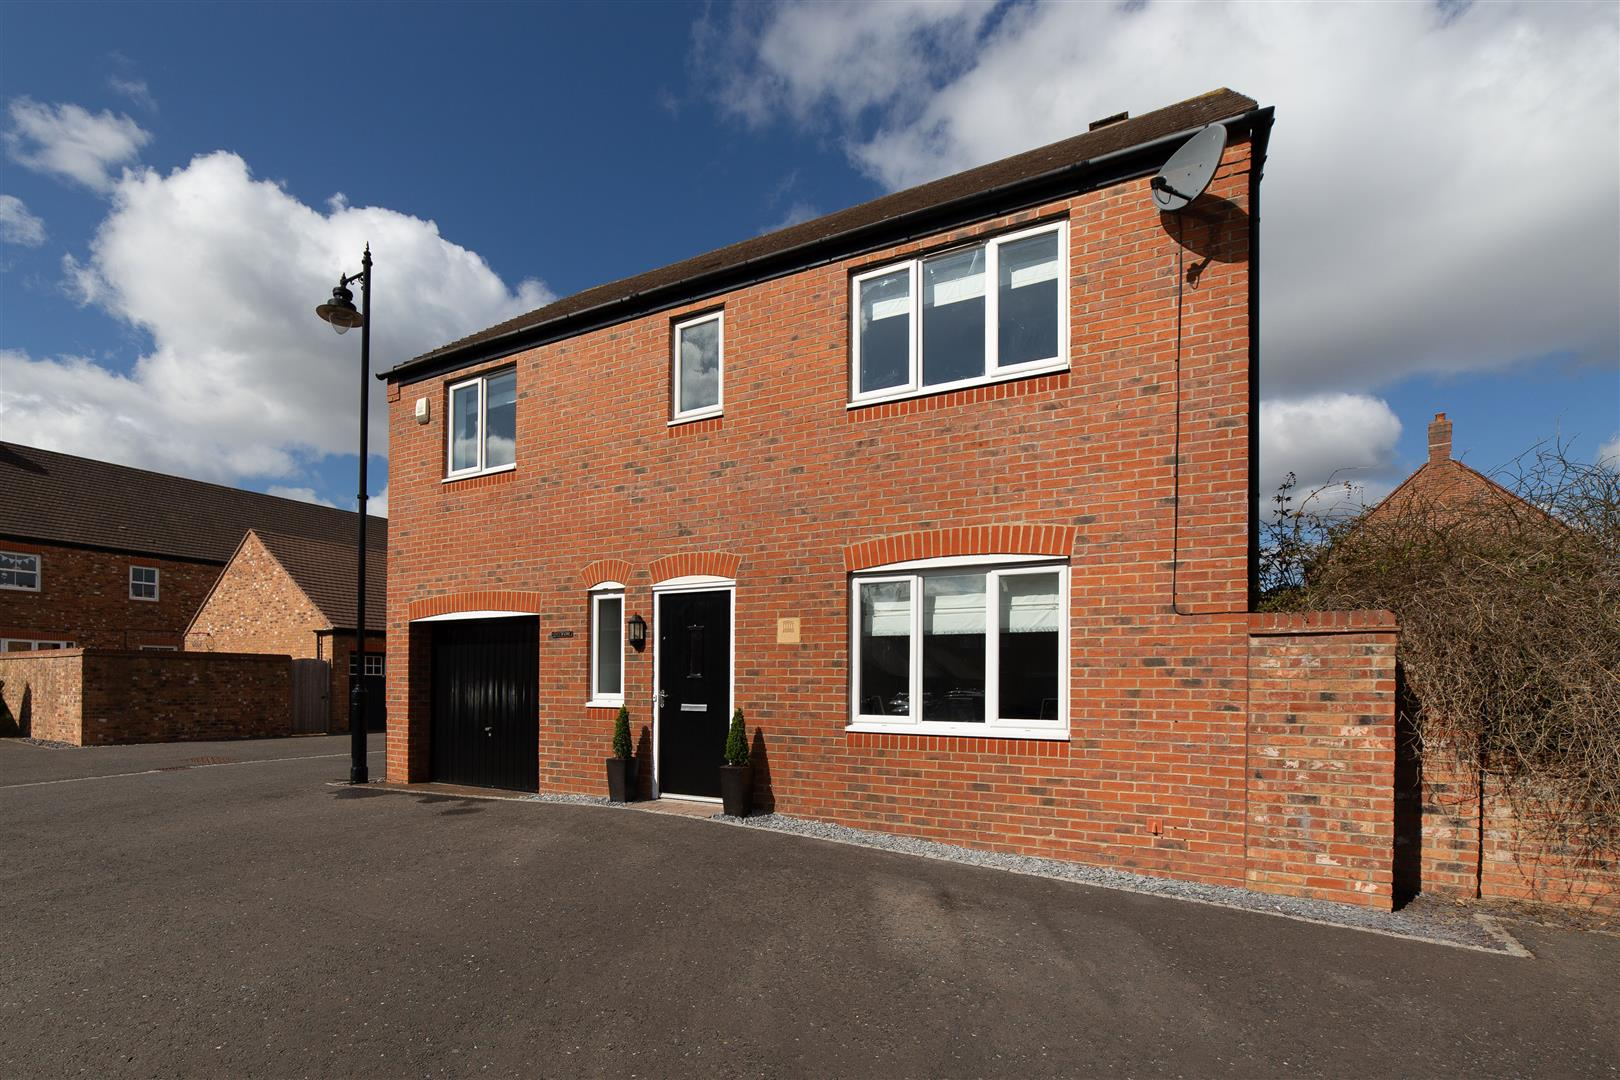 4 bed detached house for sale in Newcastle Upon Tyne, NE3 5RA, NE3